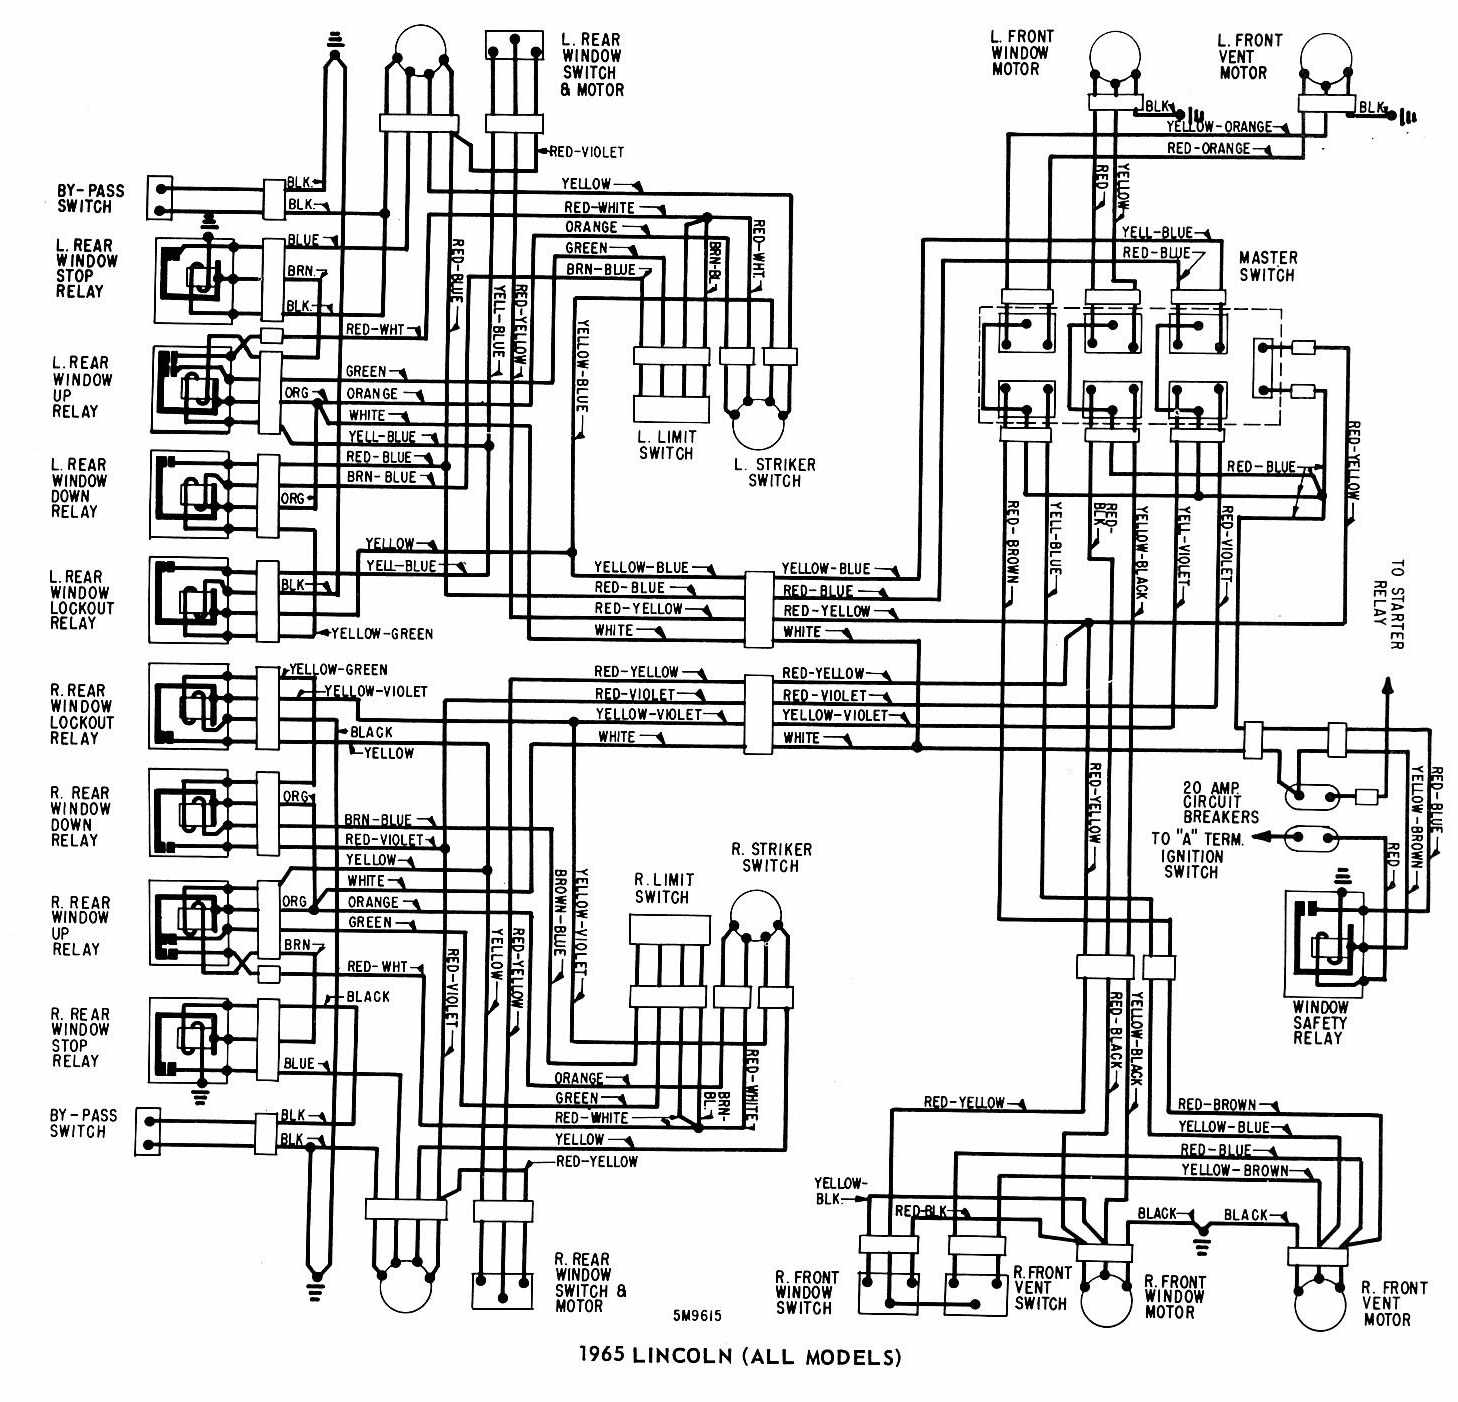 power window relay switch wiring diagram html with Lincoln All Models 1965 Windows Wiring on 378 20042009 Renault Grand Scenic Fuse Box Diagram additionally Lincoln All Models 1965 Windows Wiring besides 6q00r Lincoln Continental 1971 Lincoln Continental 4dr furthermore Fuses And Relay Honda Jazz Fit furthermore 3bmup 95 Buick Lesabre Power Locks Stopped Working Overnight.